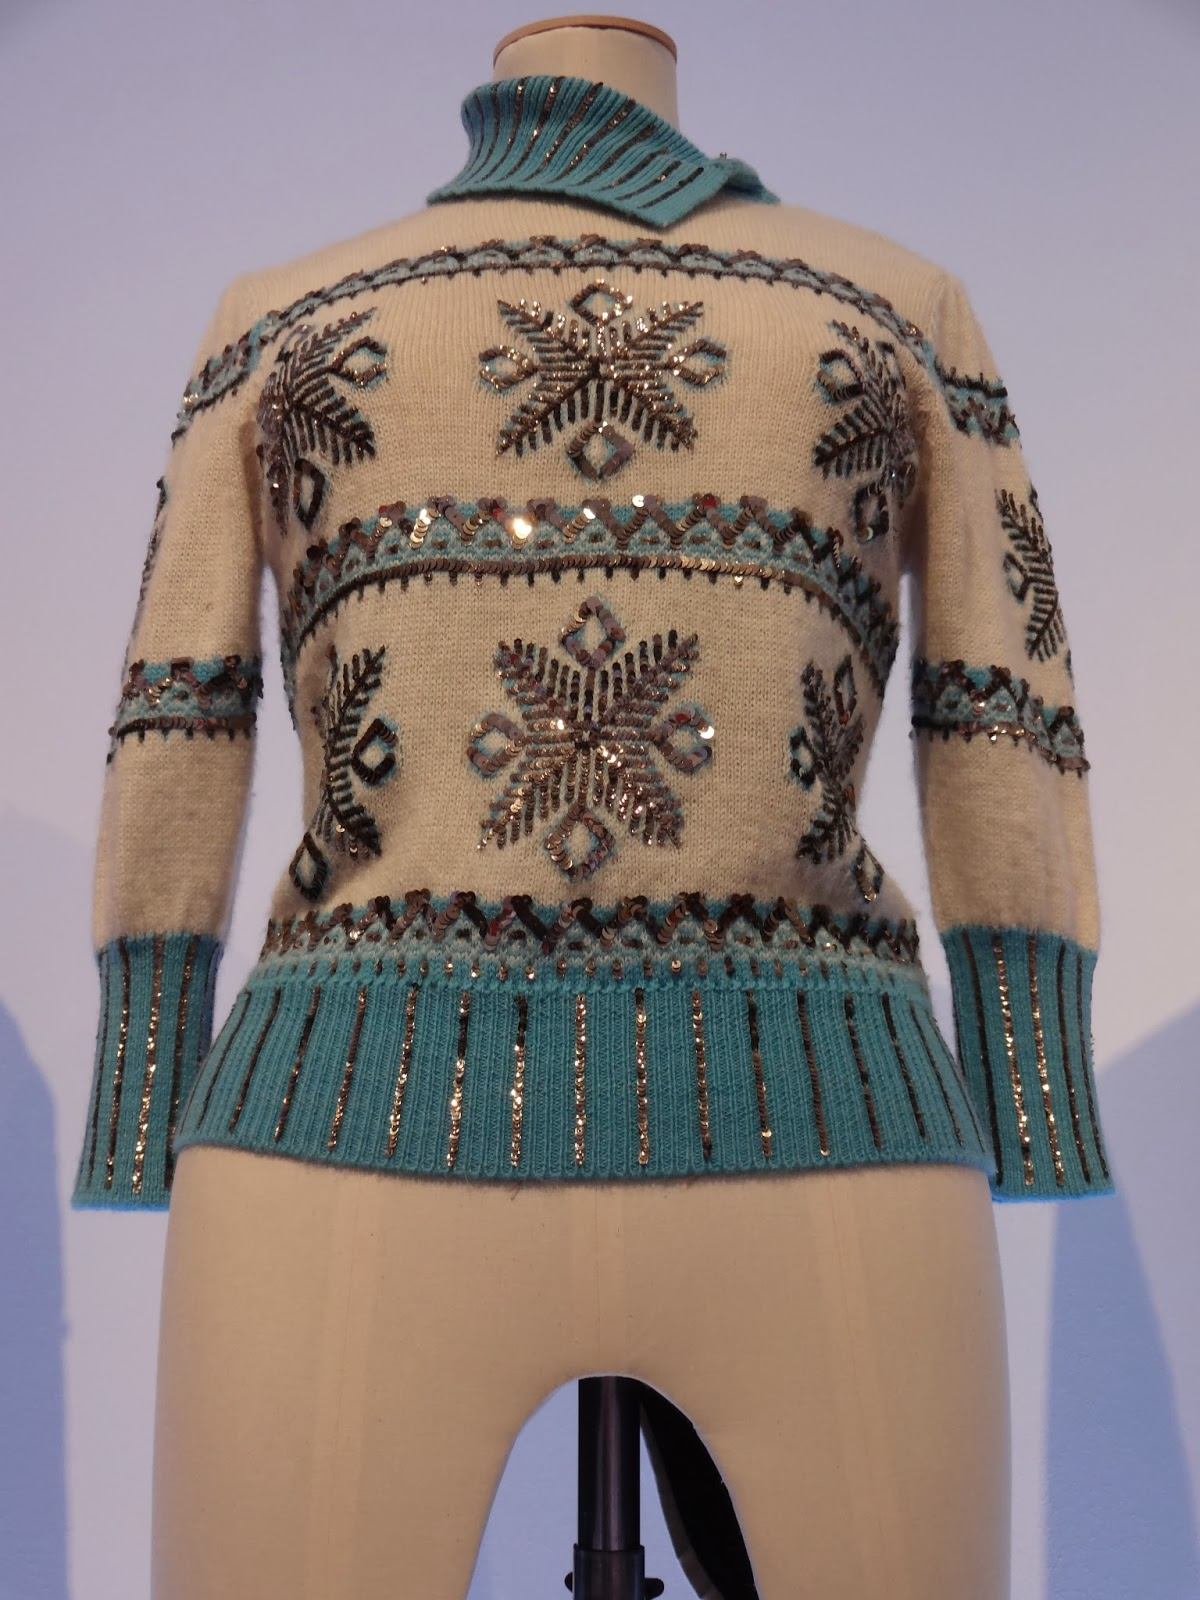 Women's Sequin Snowflake Knitwear Autumn Winter 2001